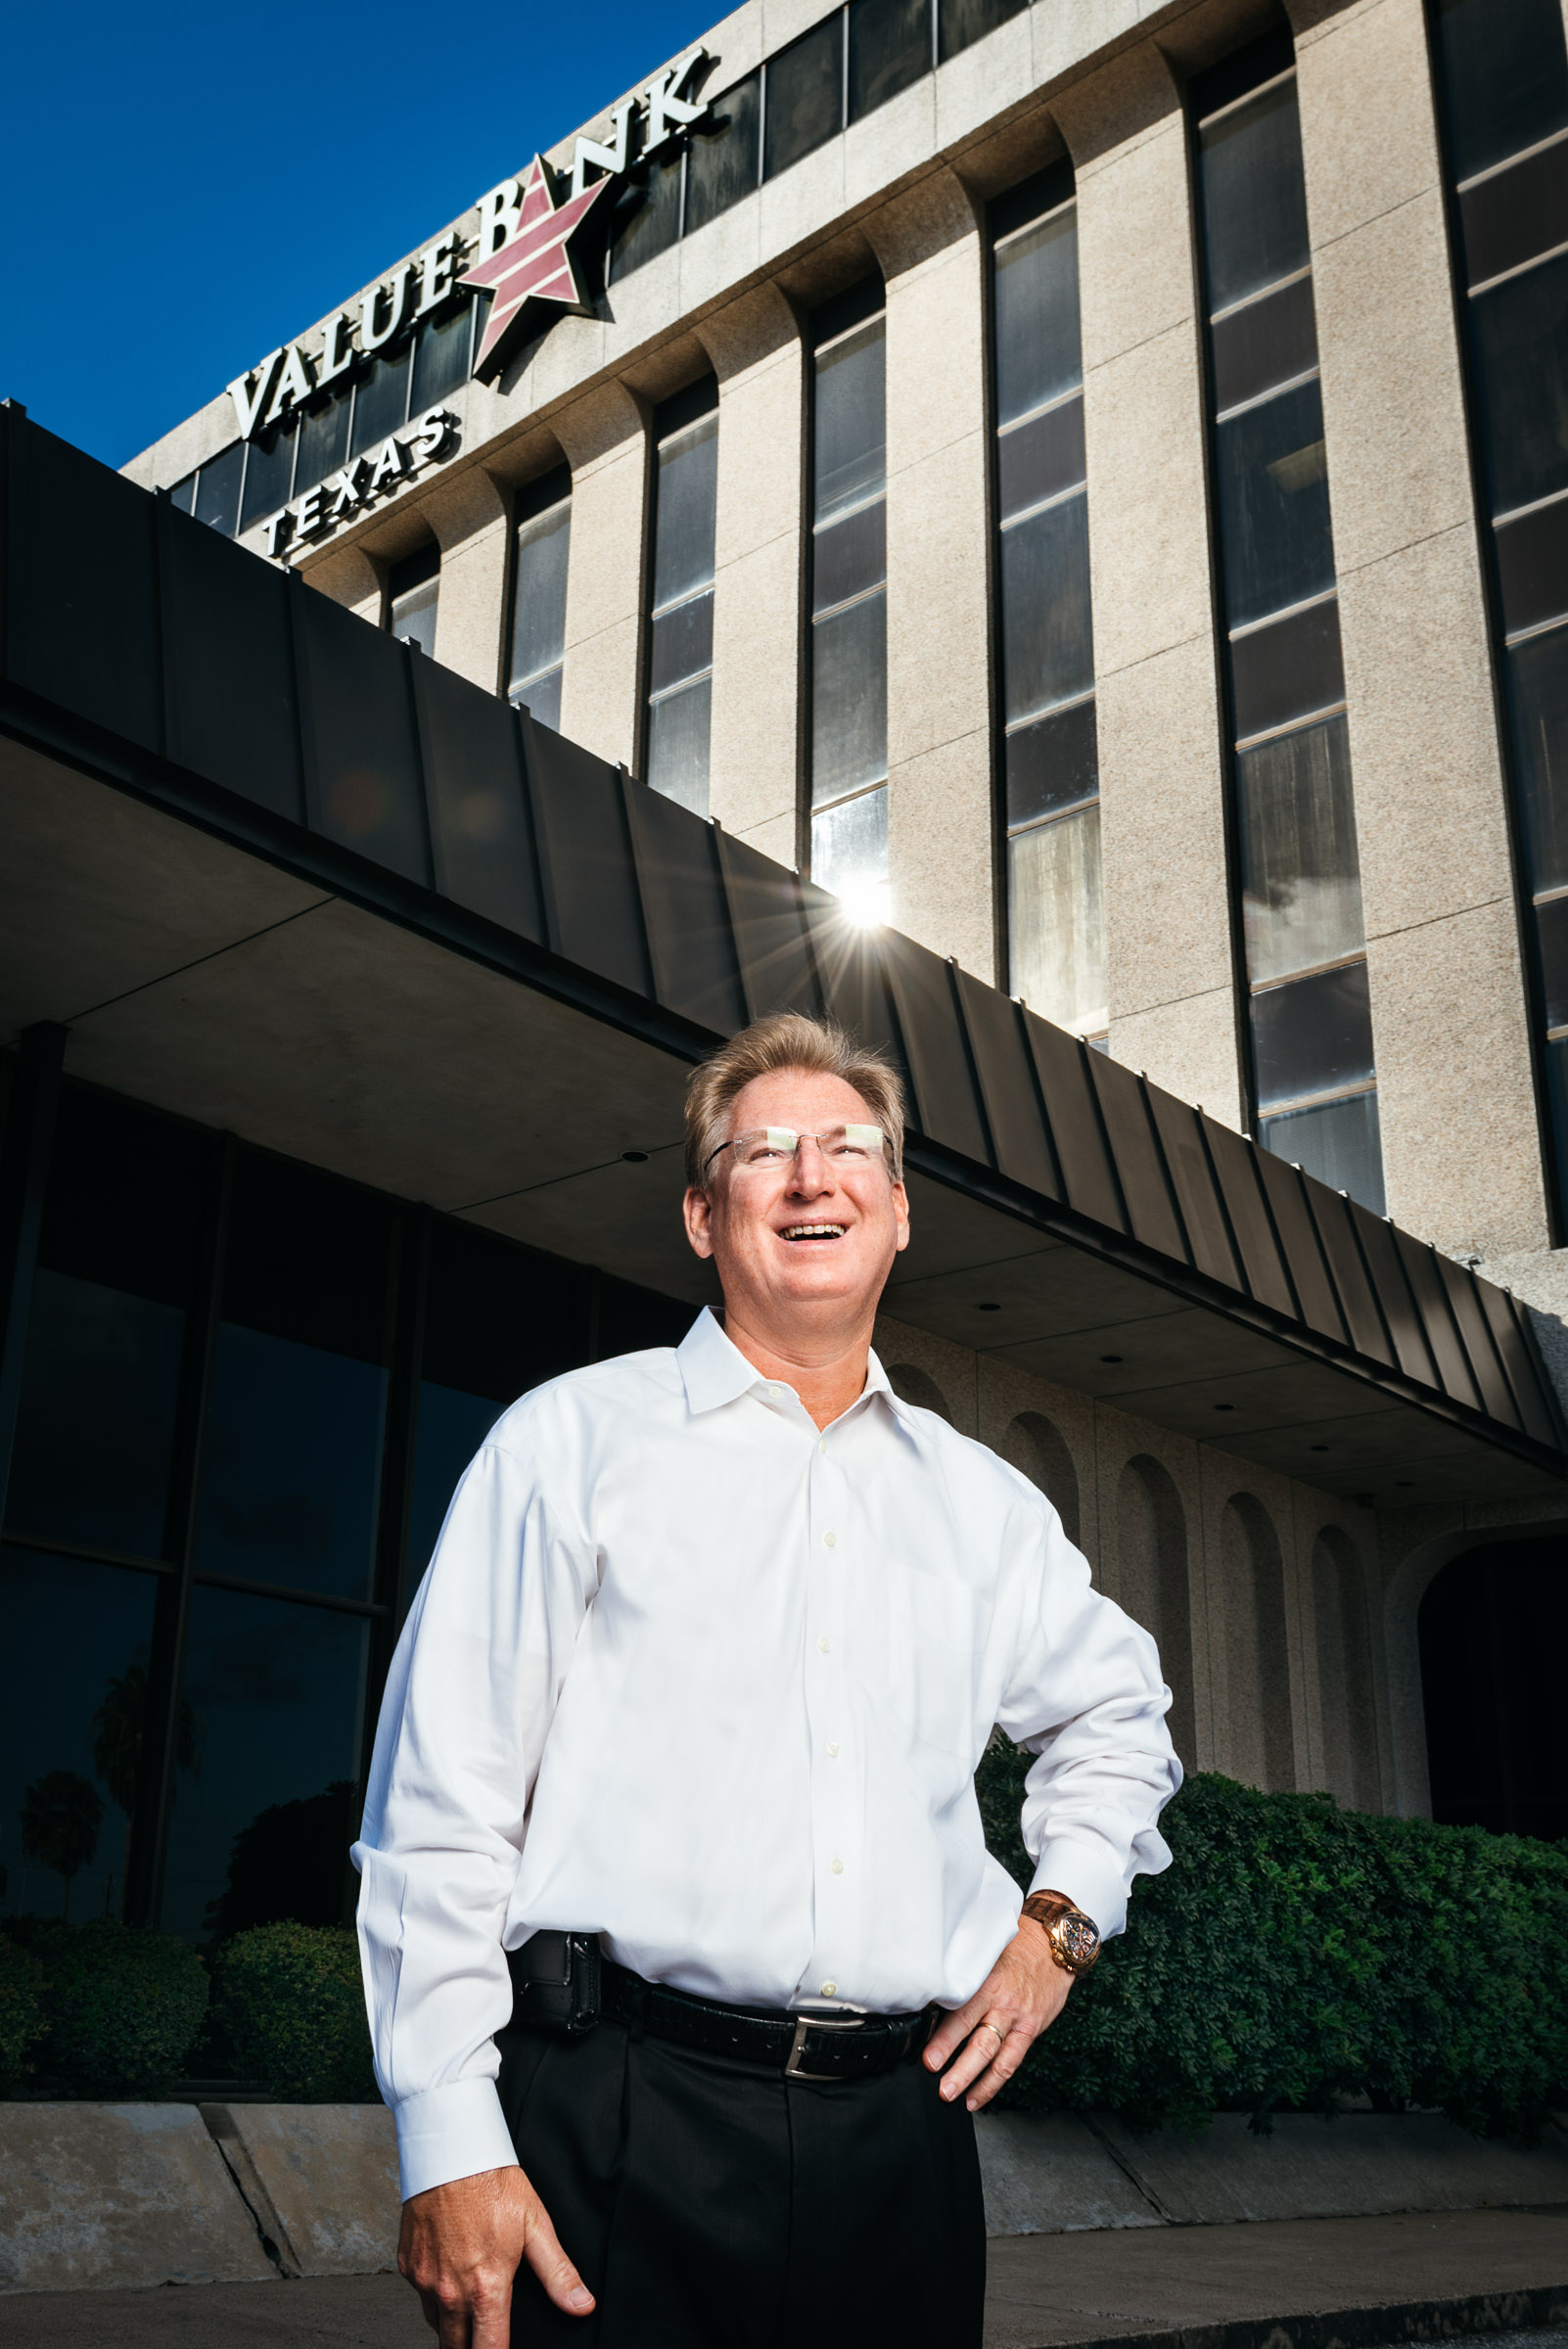 Business Leader Portrait -Scott-Heitkamp- photographed outside his bank.